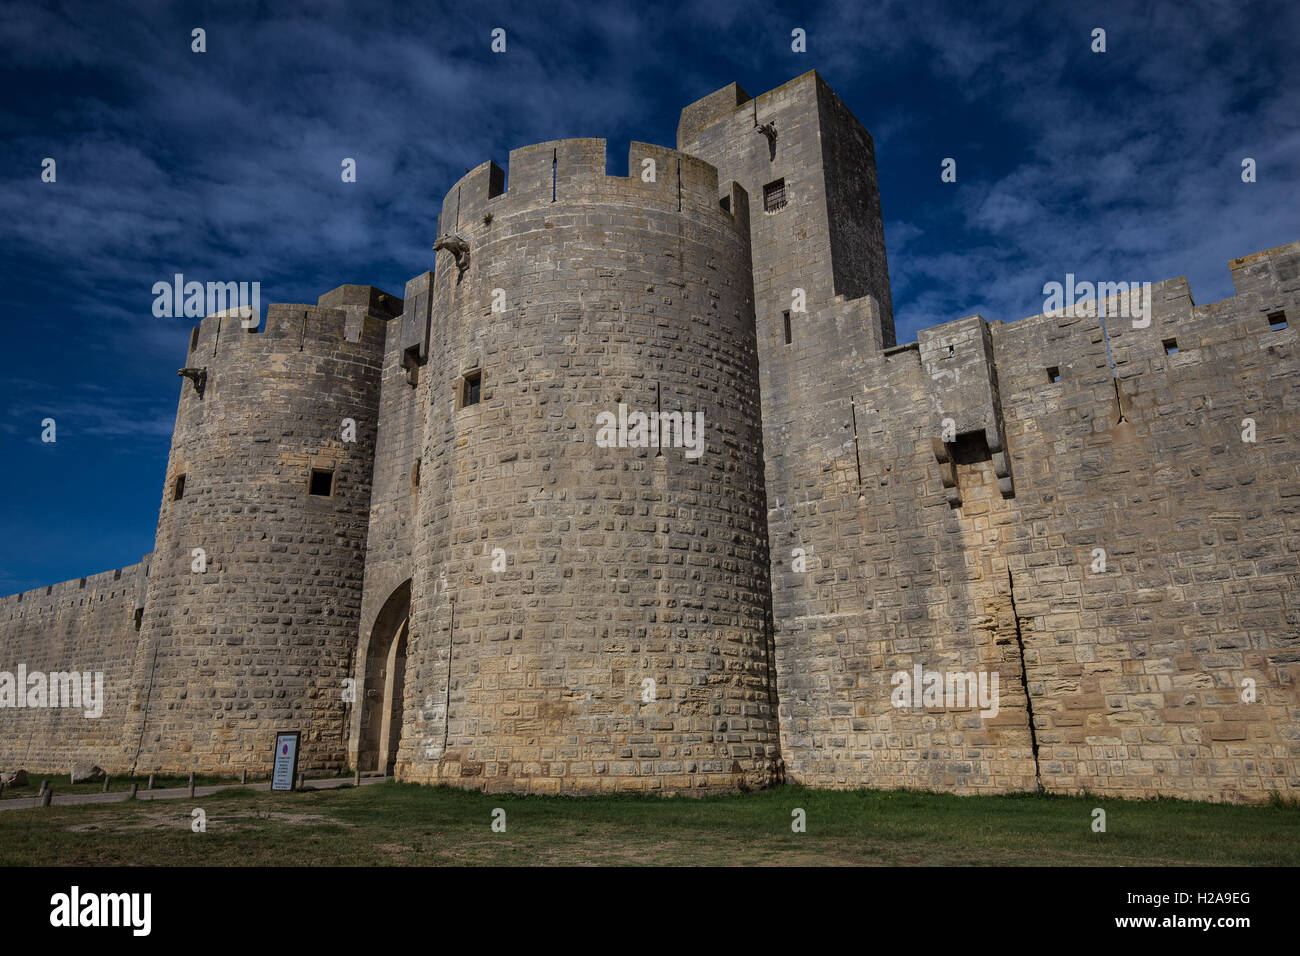 The ramparts of Aigues-Mortes and Constance Tower are spectacular in their height and their state of preservation - Stock Image